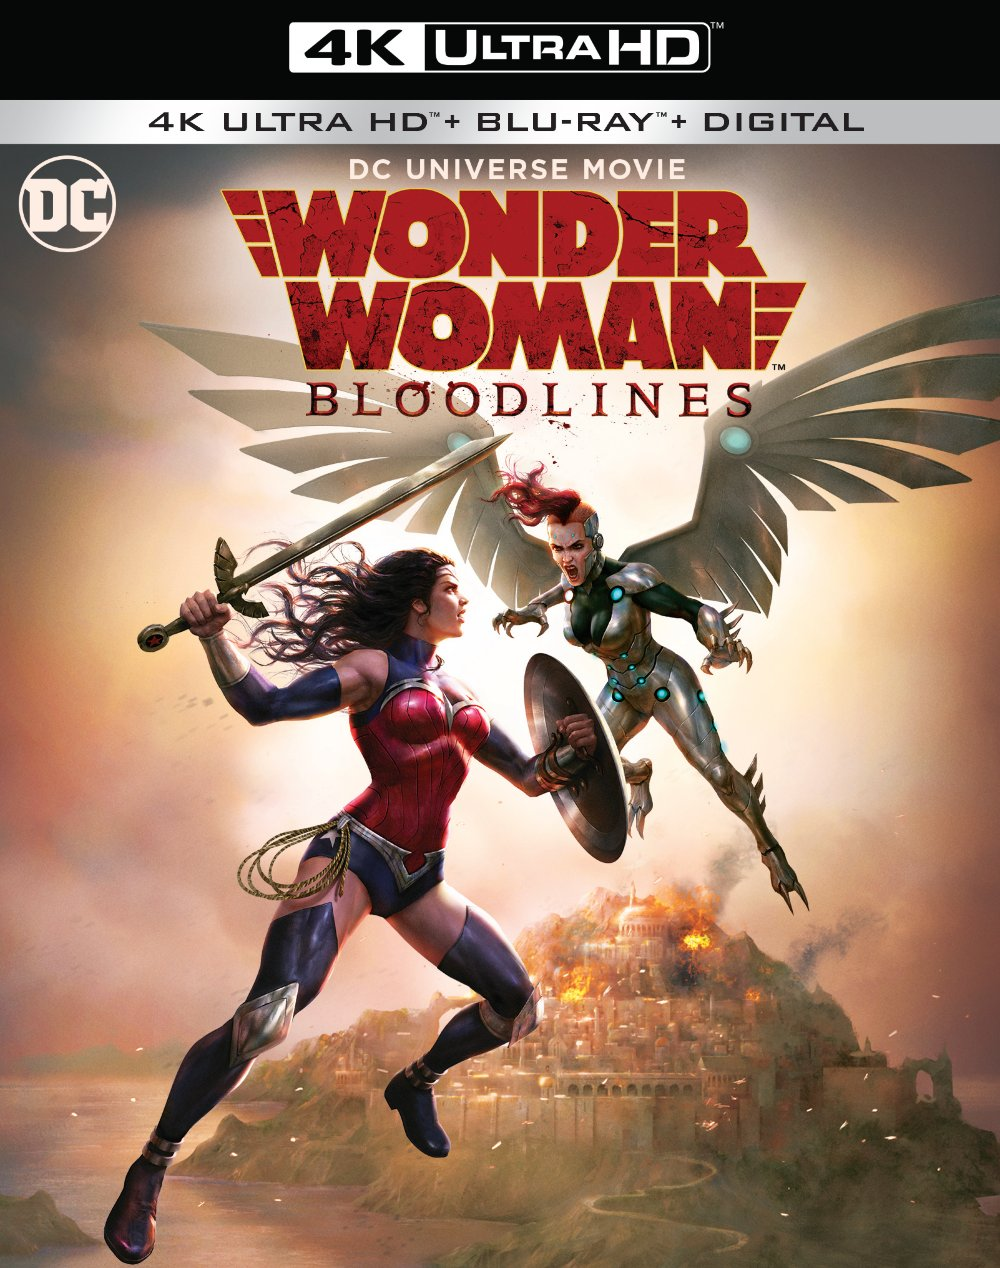 Wonder Woman 4K Blu-ray